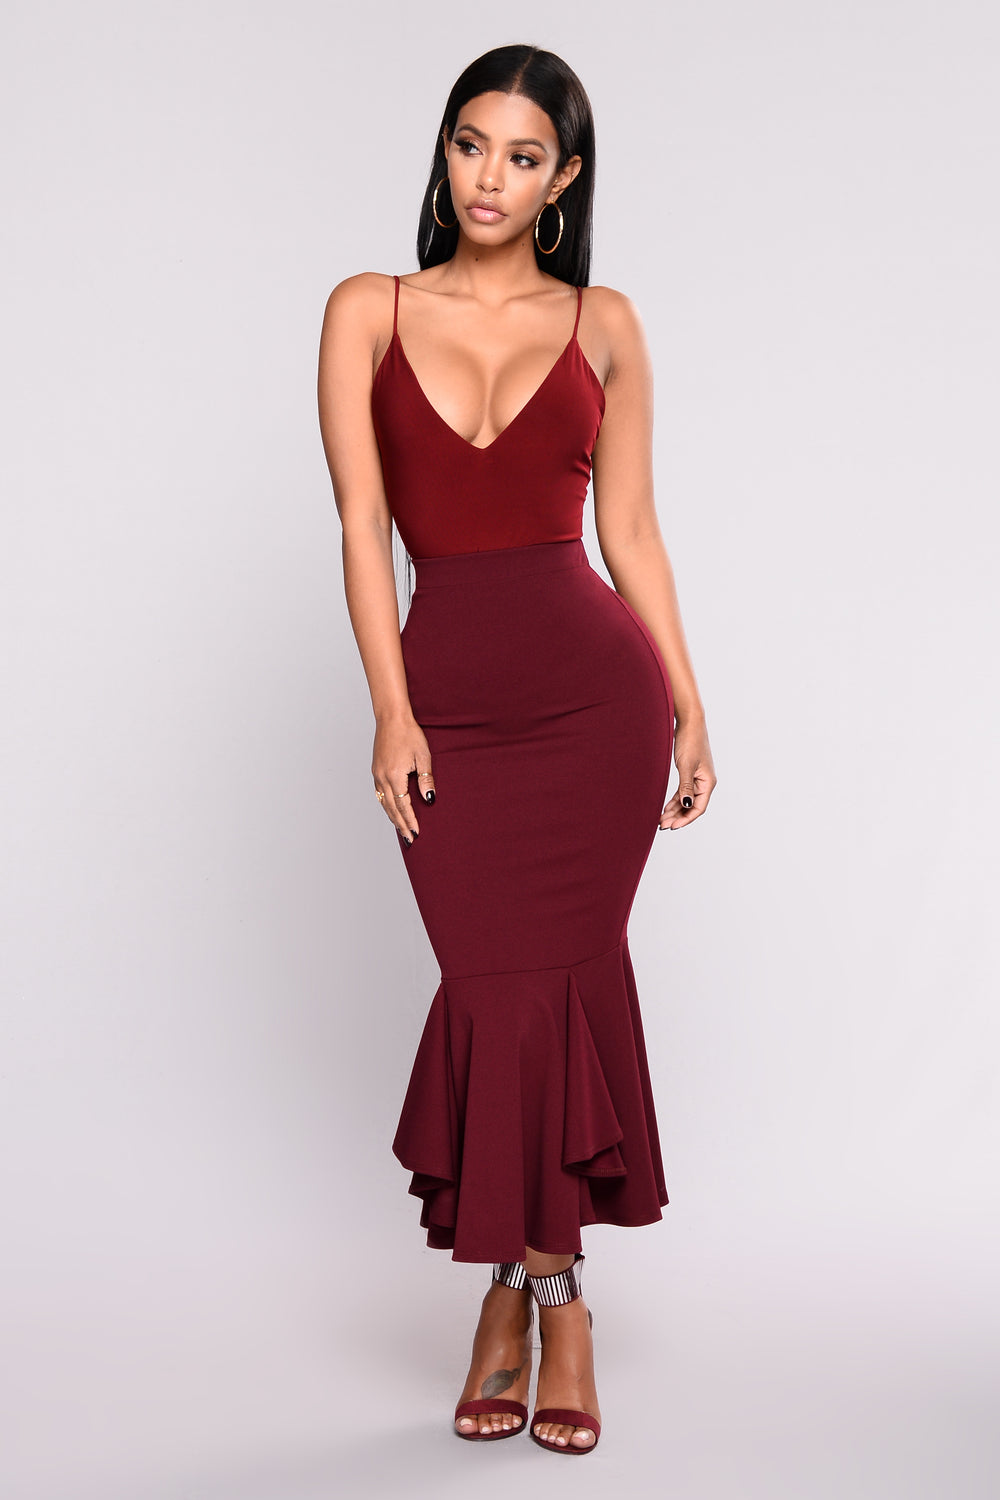 Sleek And Slay Bodysuit - Burgundy